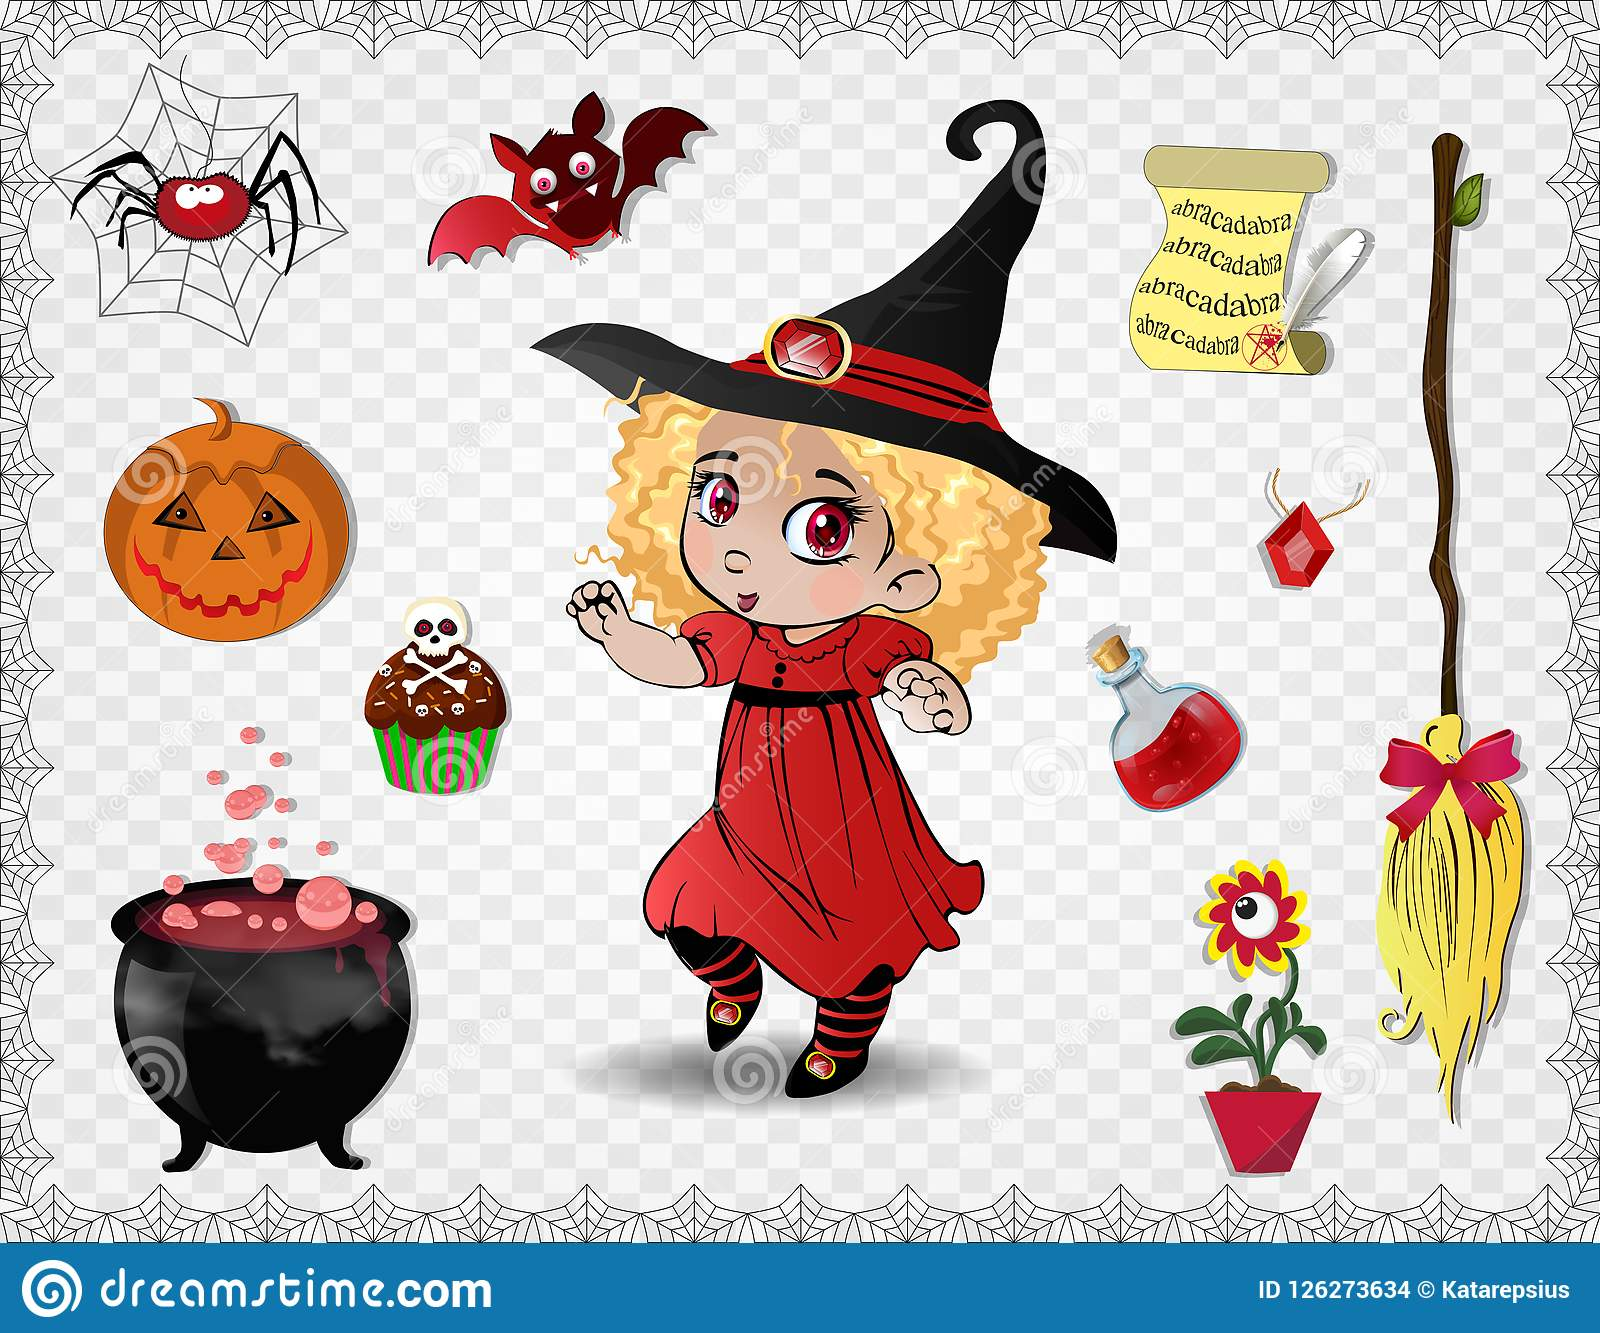 Witch girl game download